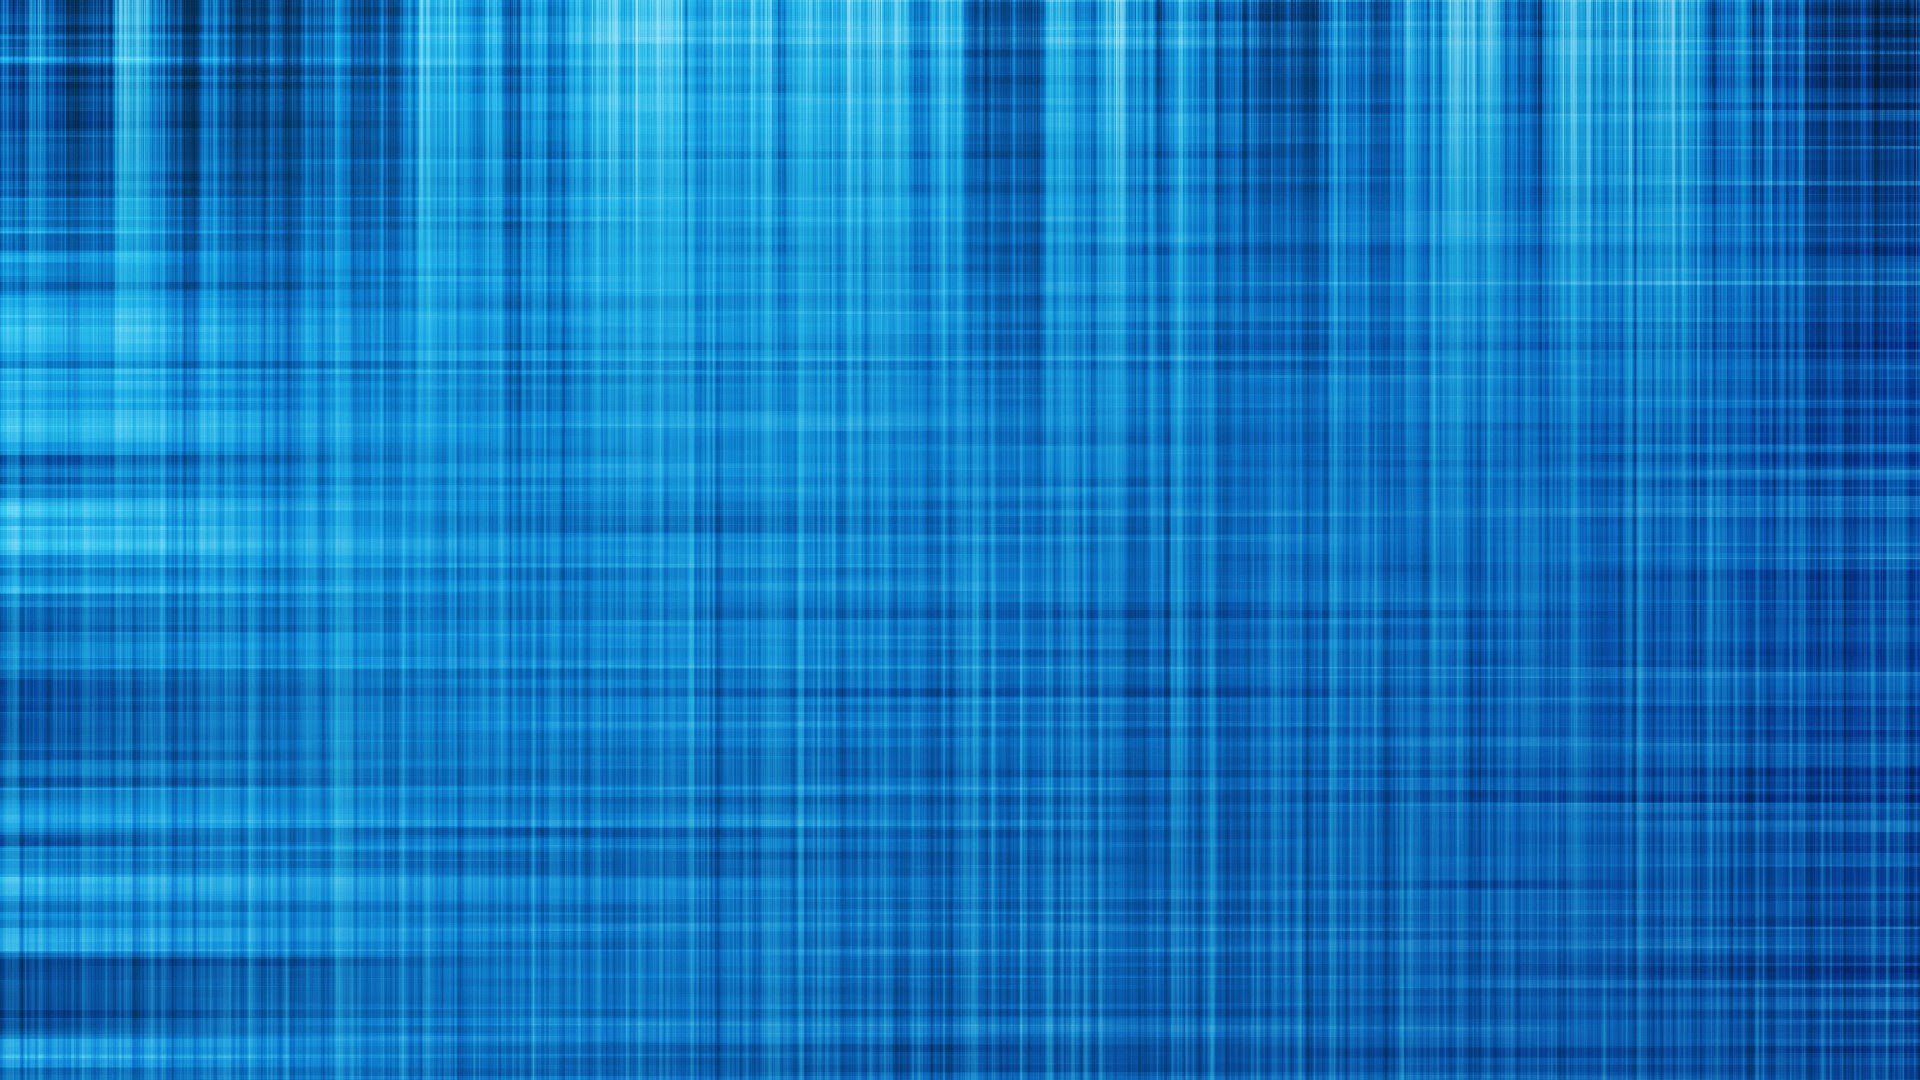 Blue HD 1920x1080 Wallpaper - WallpaperSafari